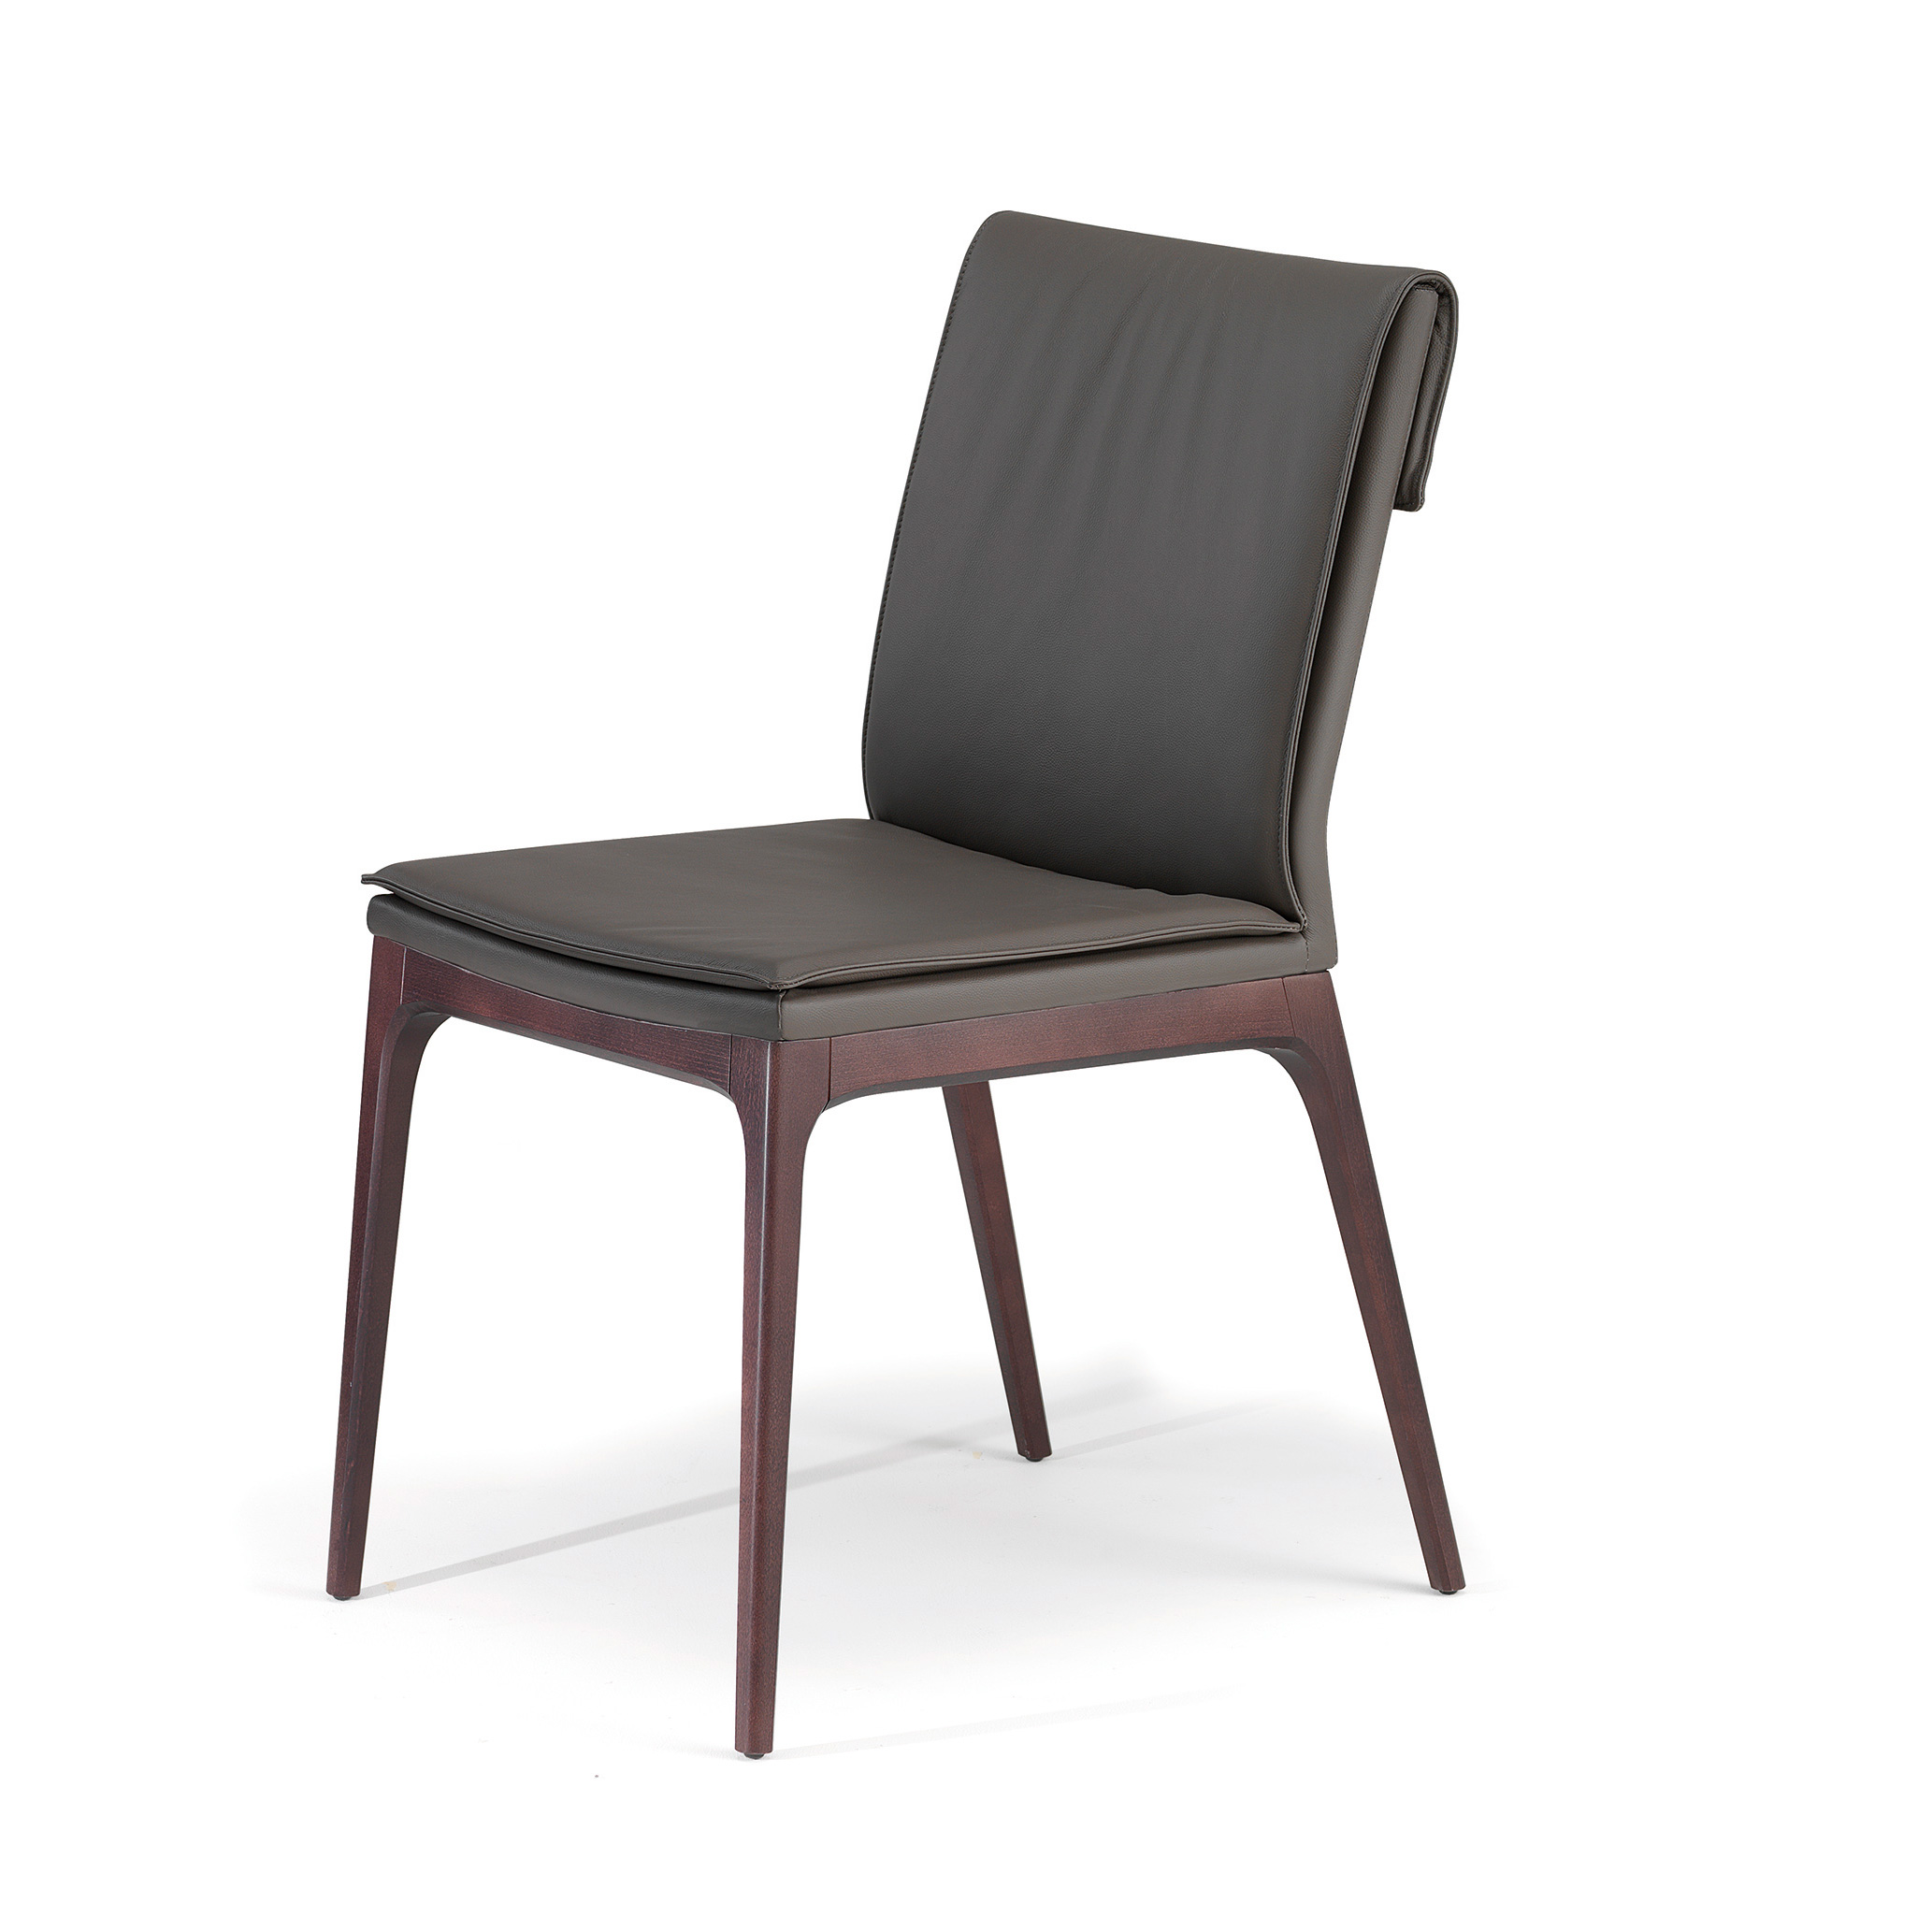 Sofia Chair Luxury Contemporary Sofia Italian Chair Italian Designer